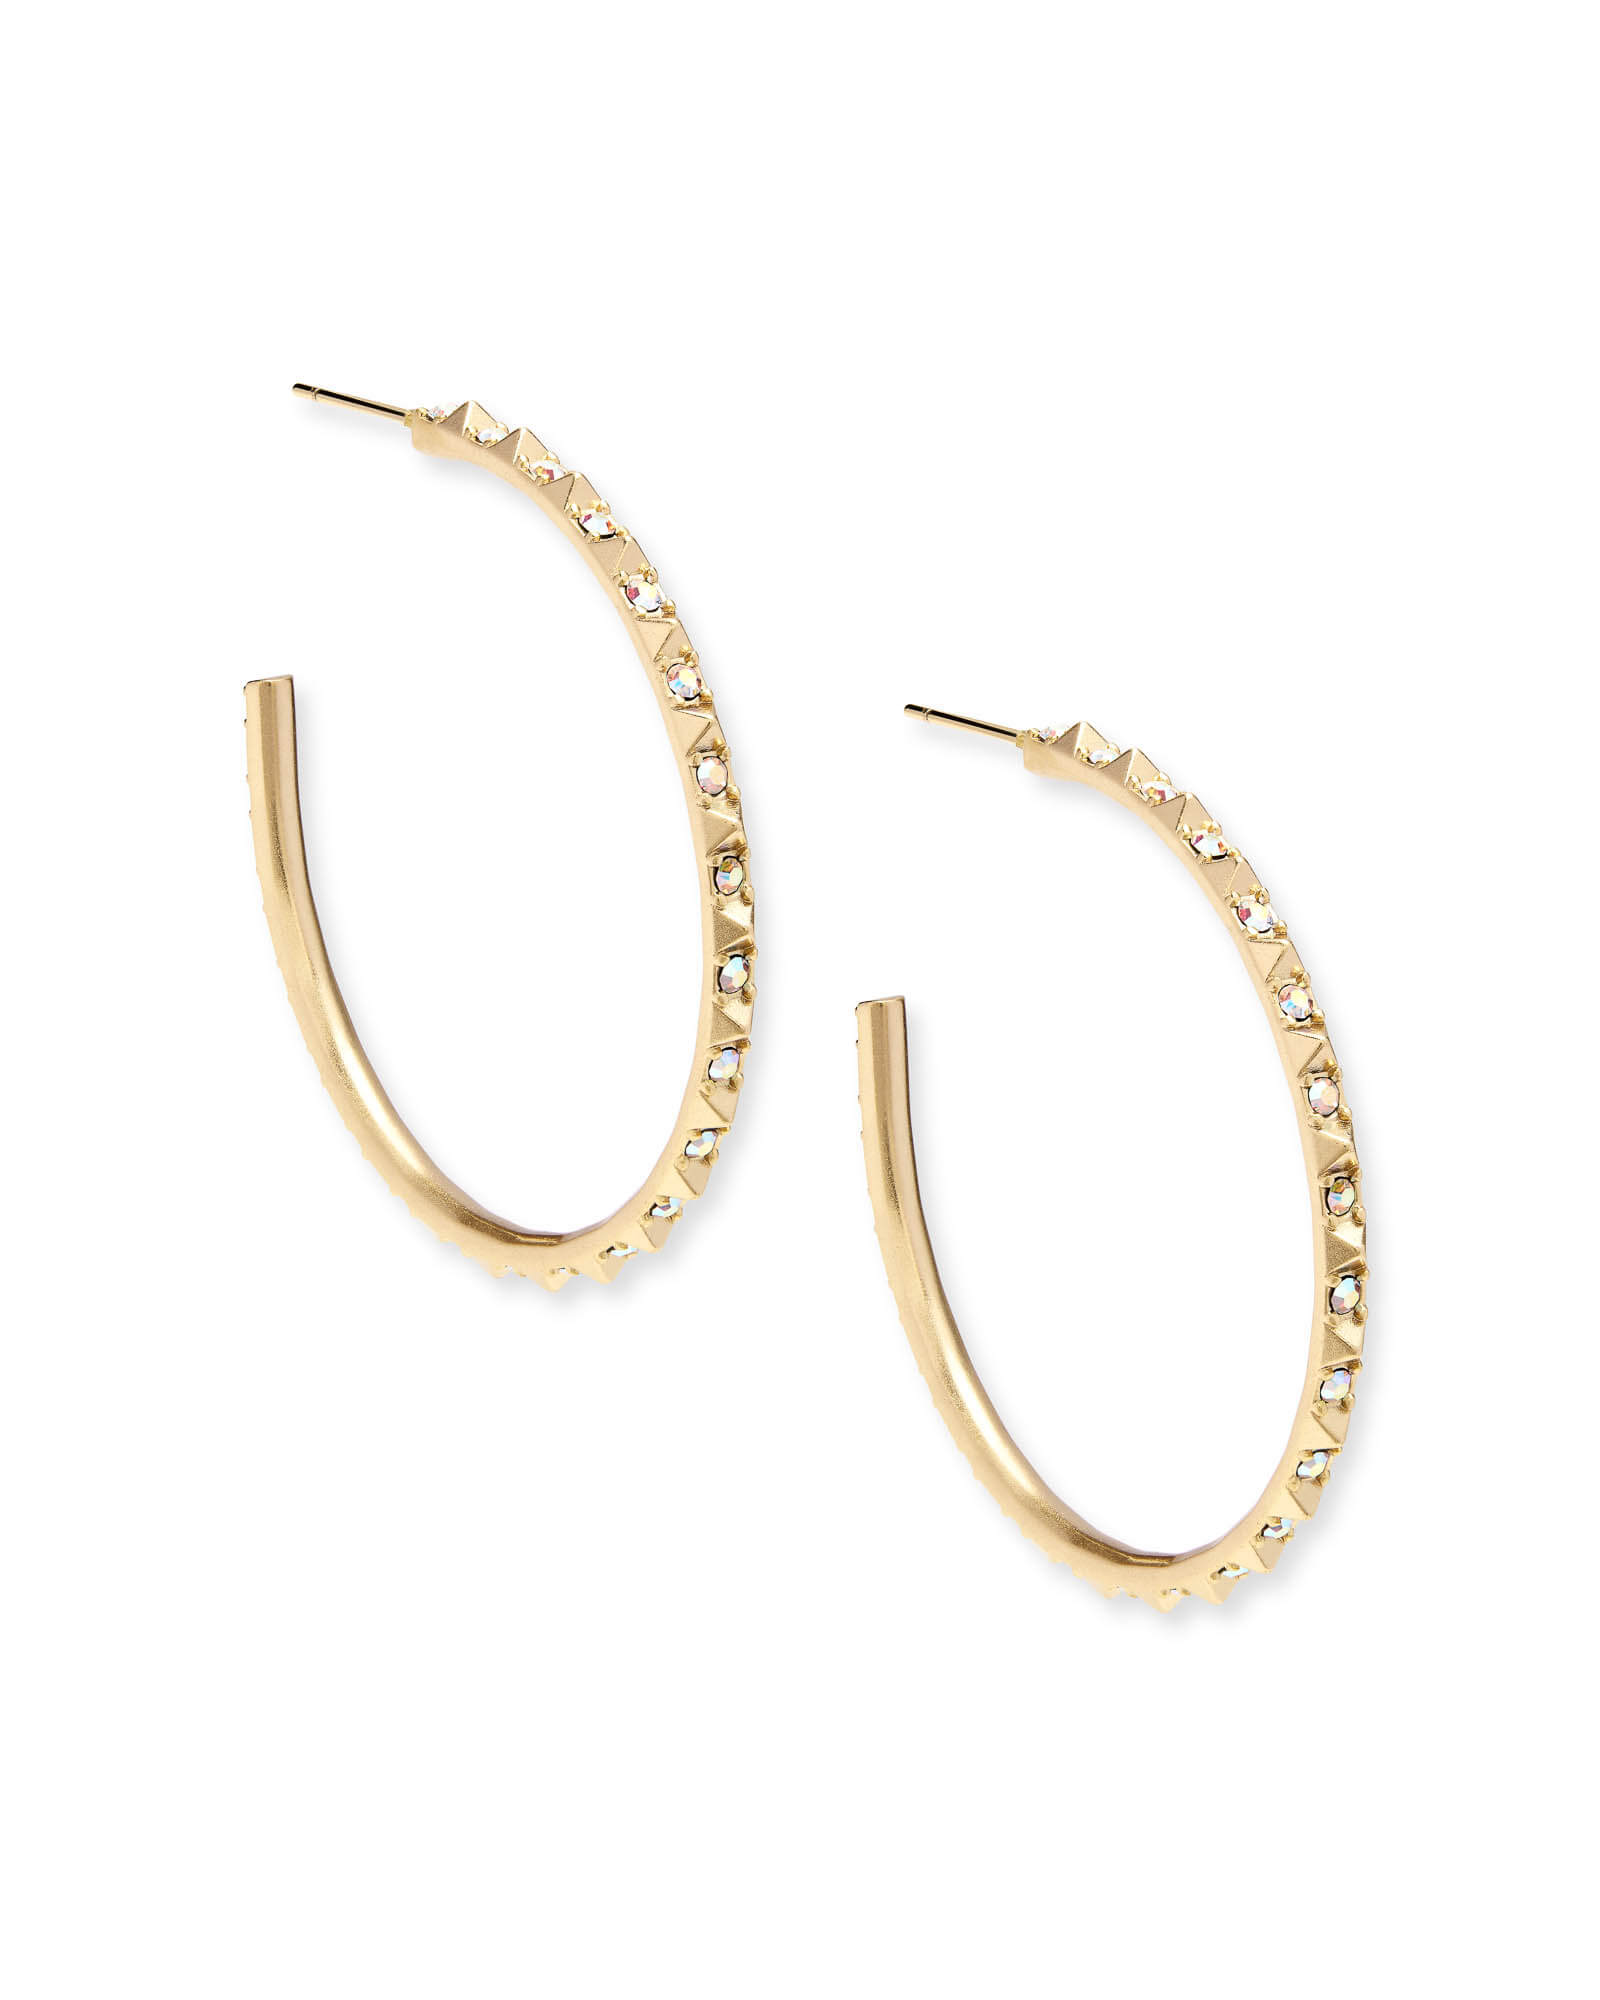 Veronica Hoop Earrings in Gold